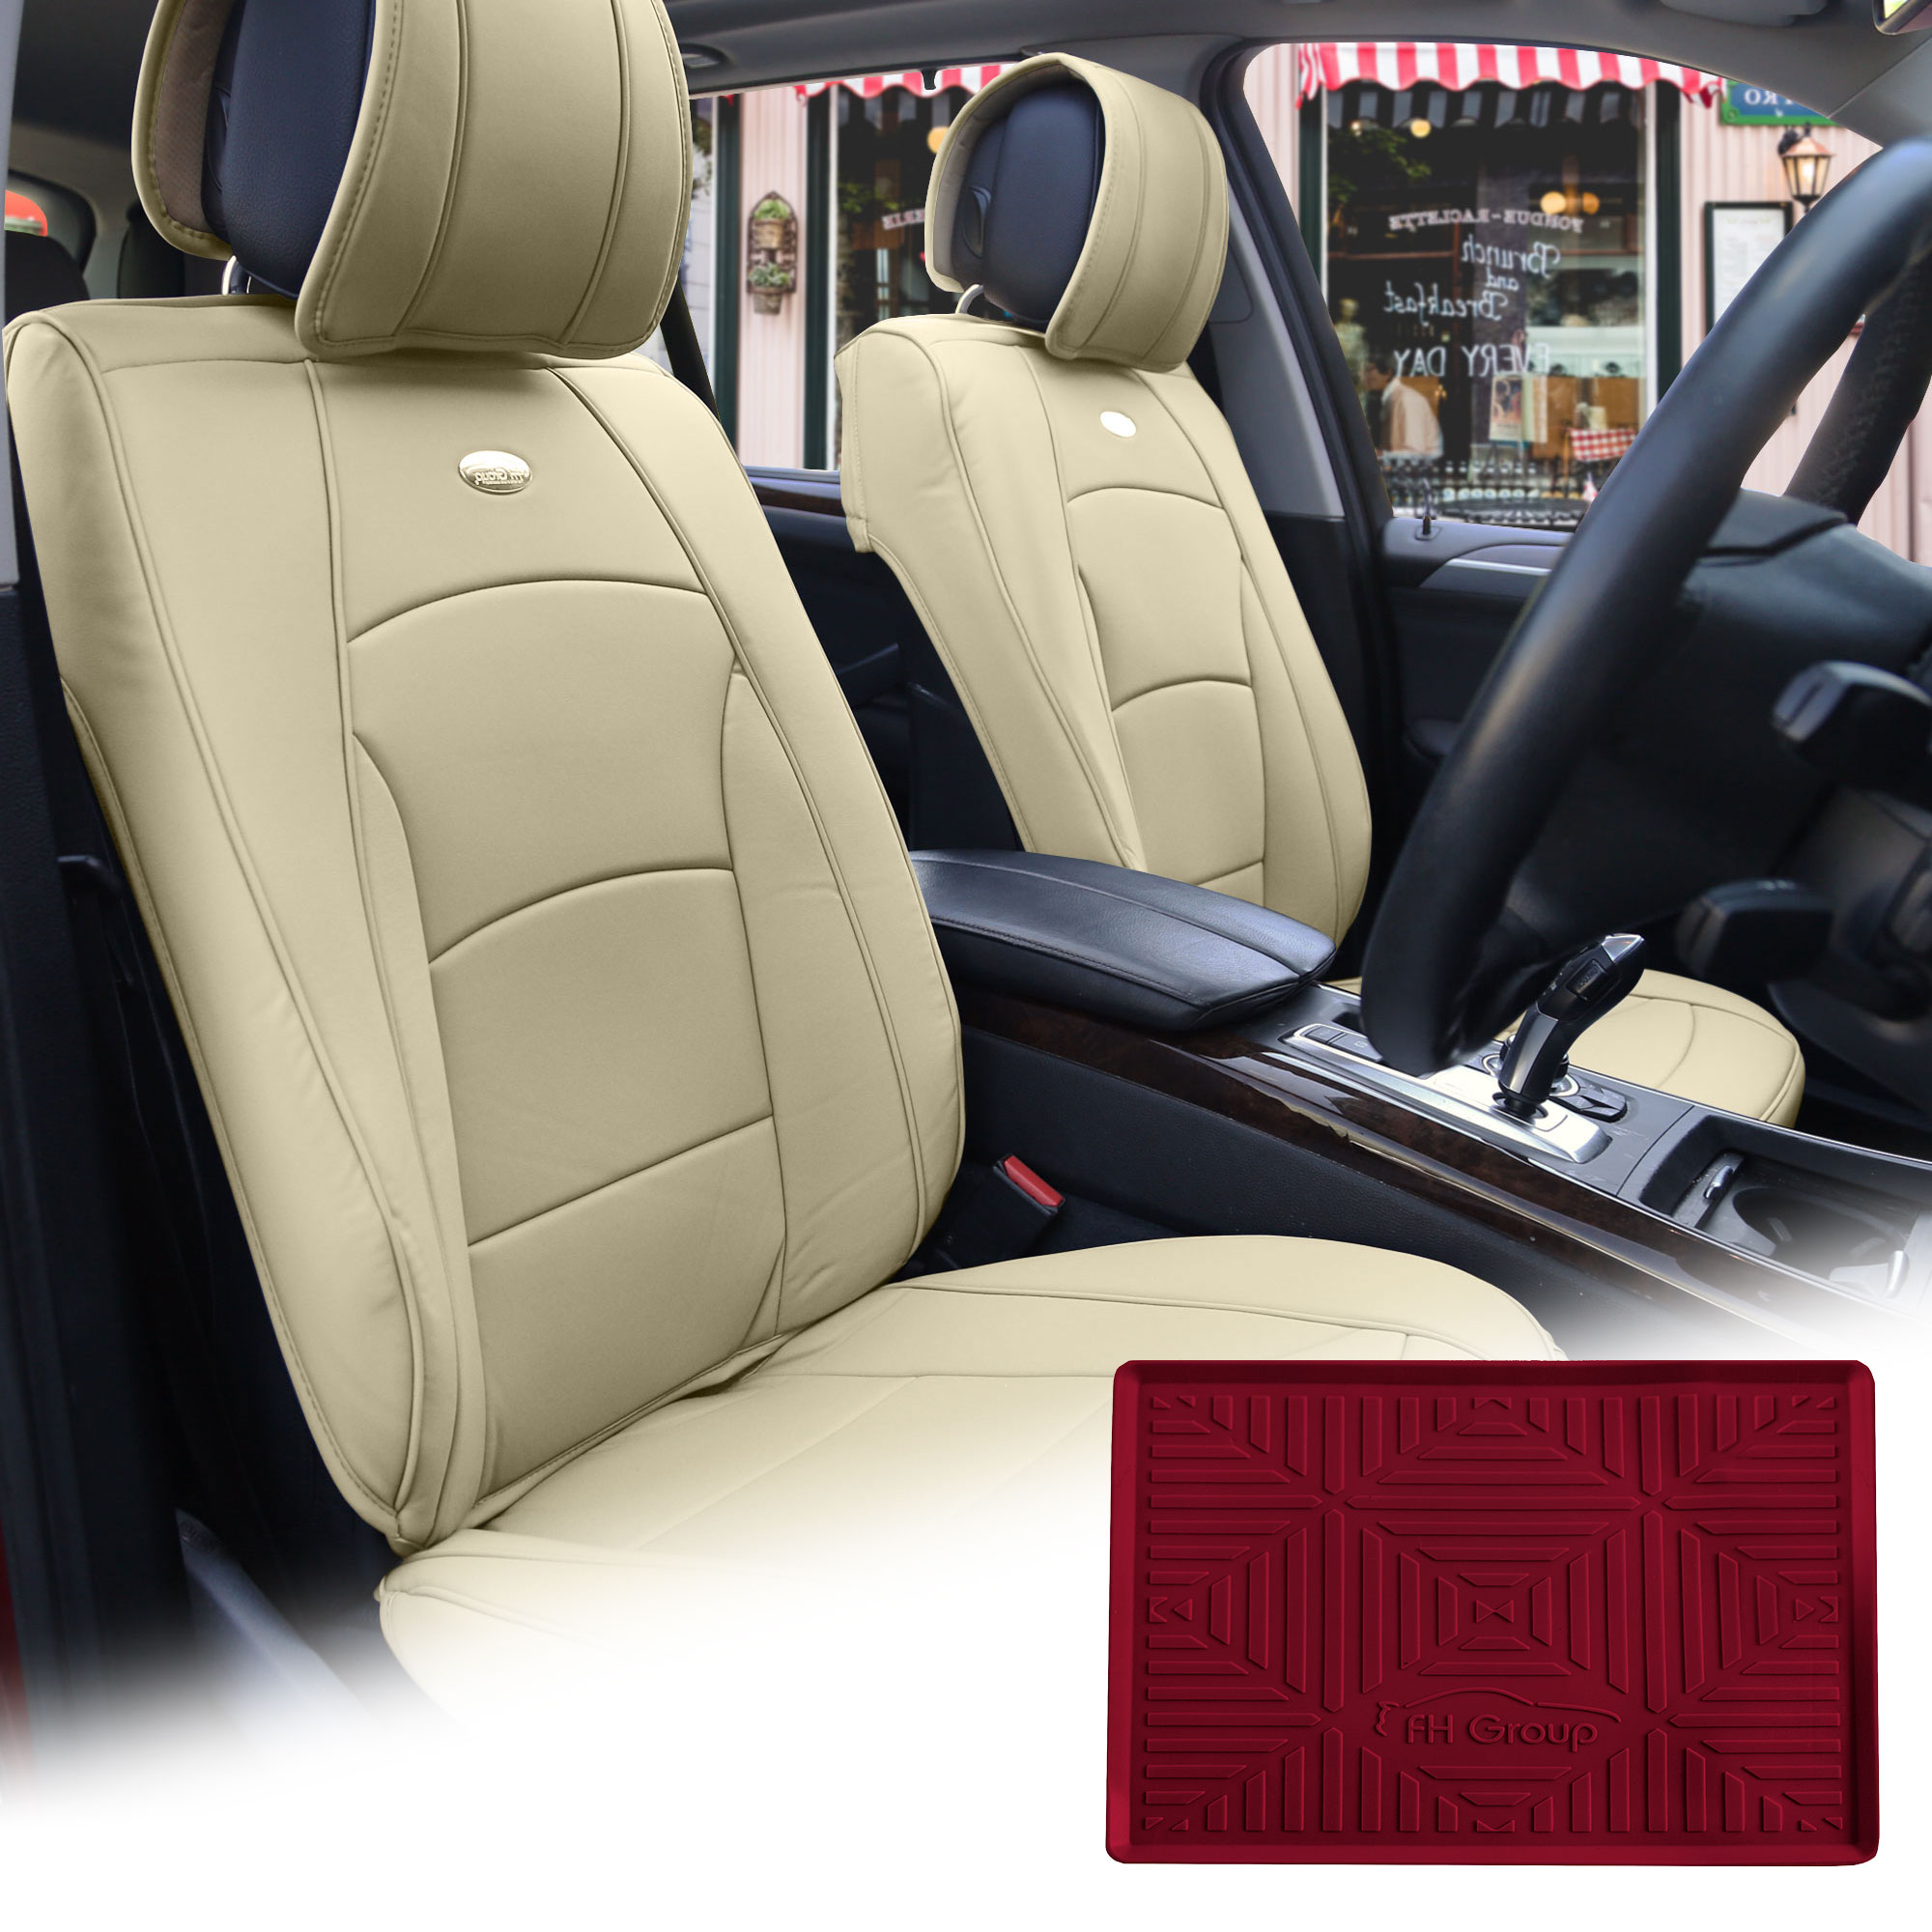 FH Group Solid Beige PU Leather Front Bucket Seat Cushion Covers for Auto Car SUV Truck Van with Burgundy Dash Mat